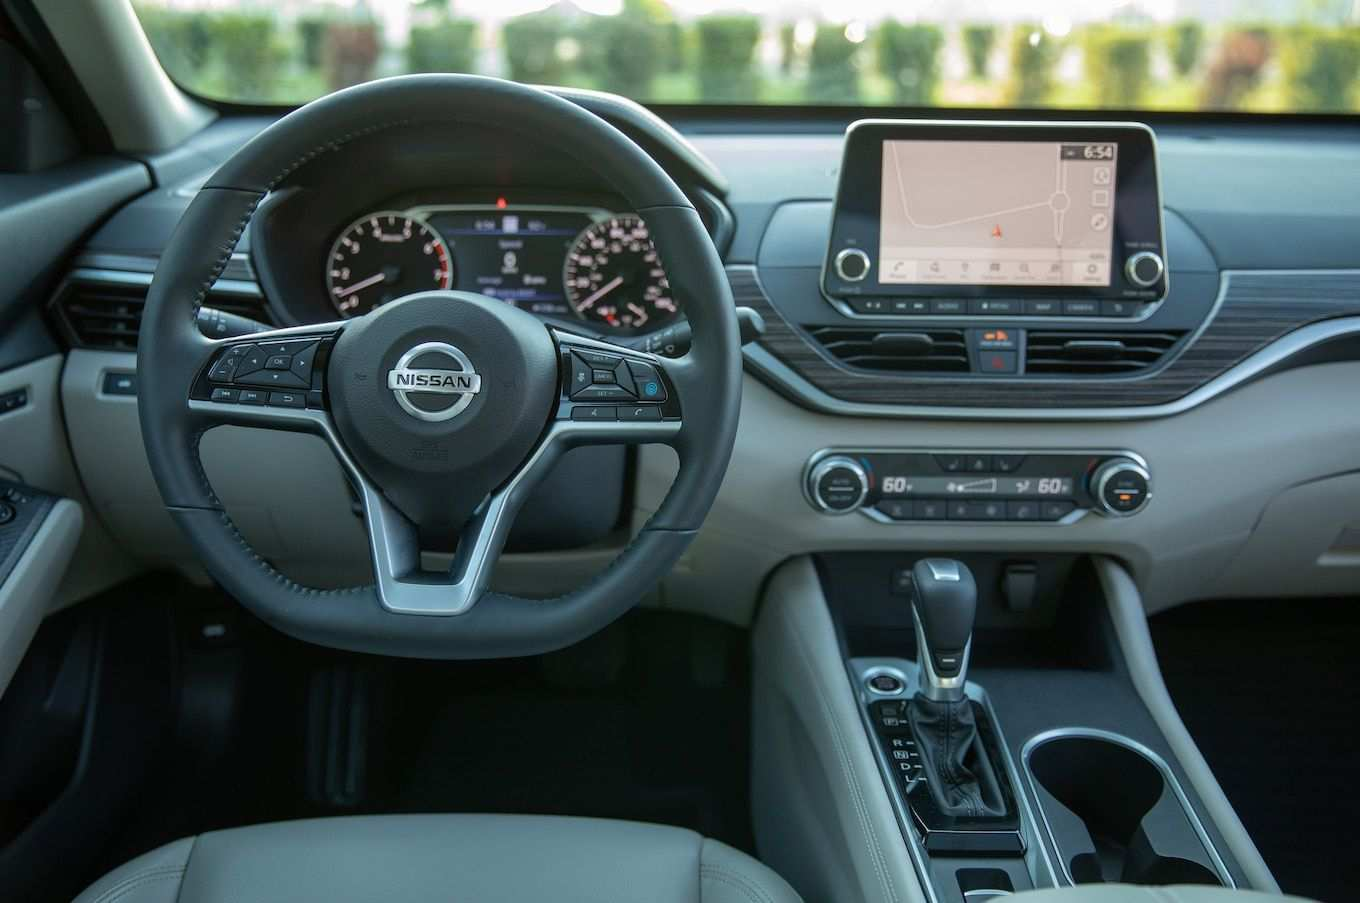 94 All New Nissan 2019 Interior Images